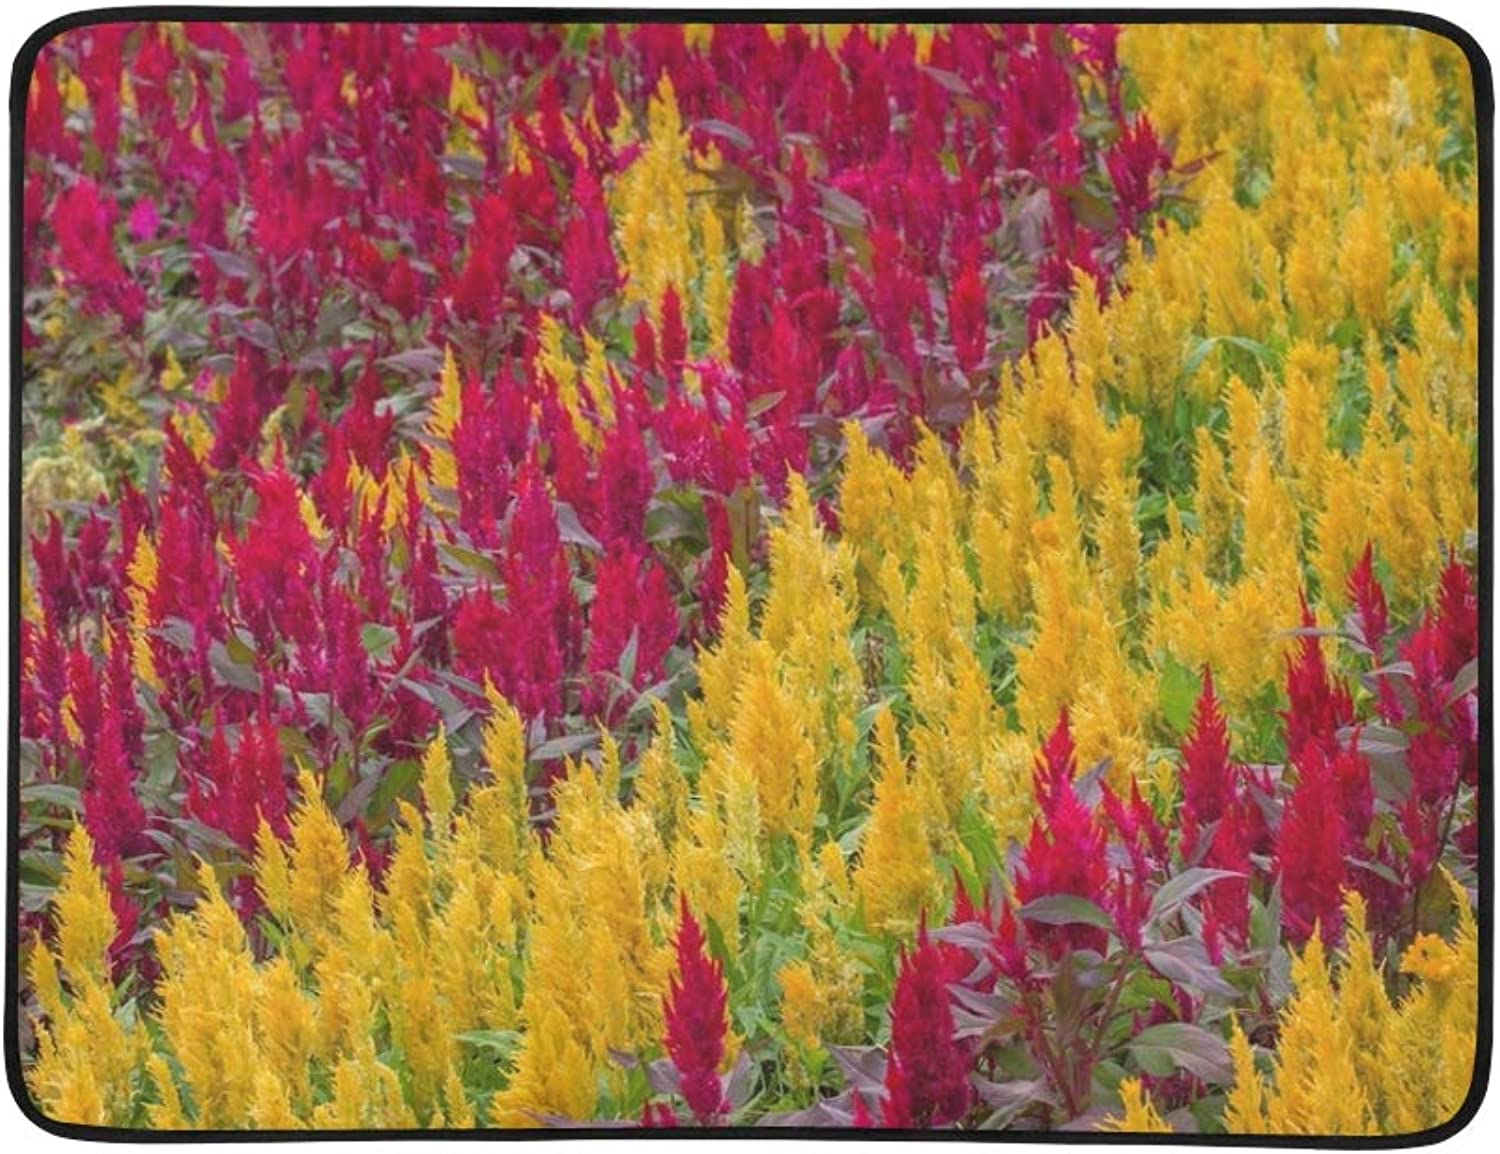 Plumped Celosia Flower Portable and Foldable Blanket Mat 60x78 Inch Handy Mat for Camping Picnic Beach Indoor Outdoor Travel